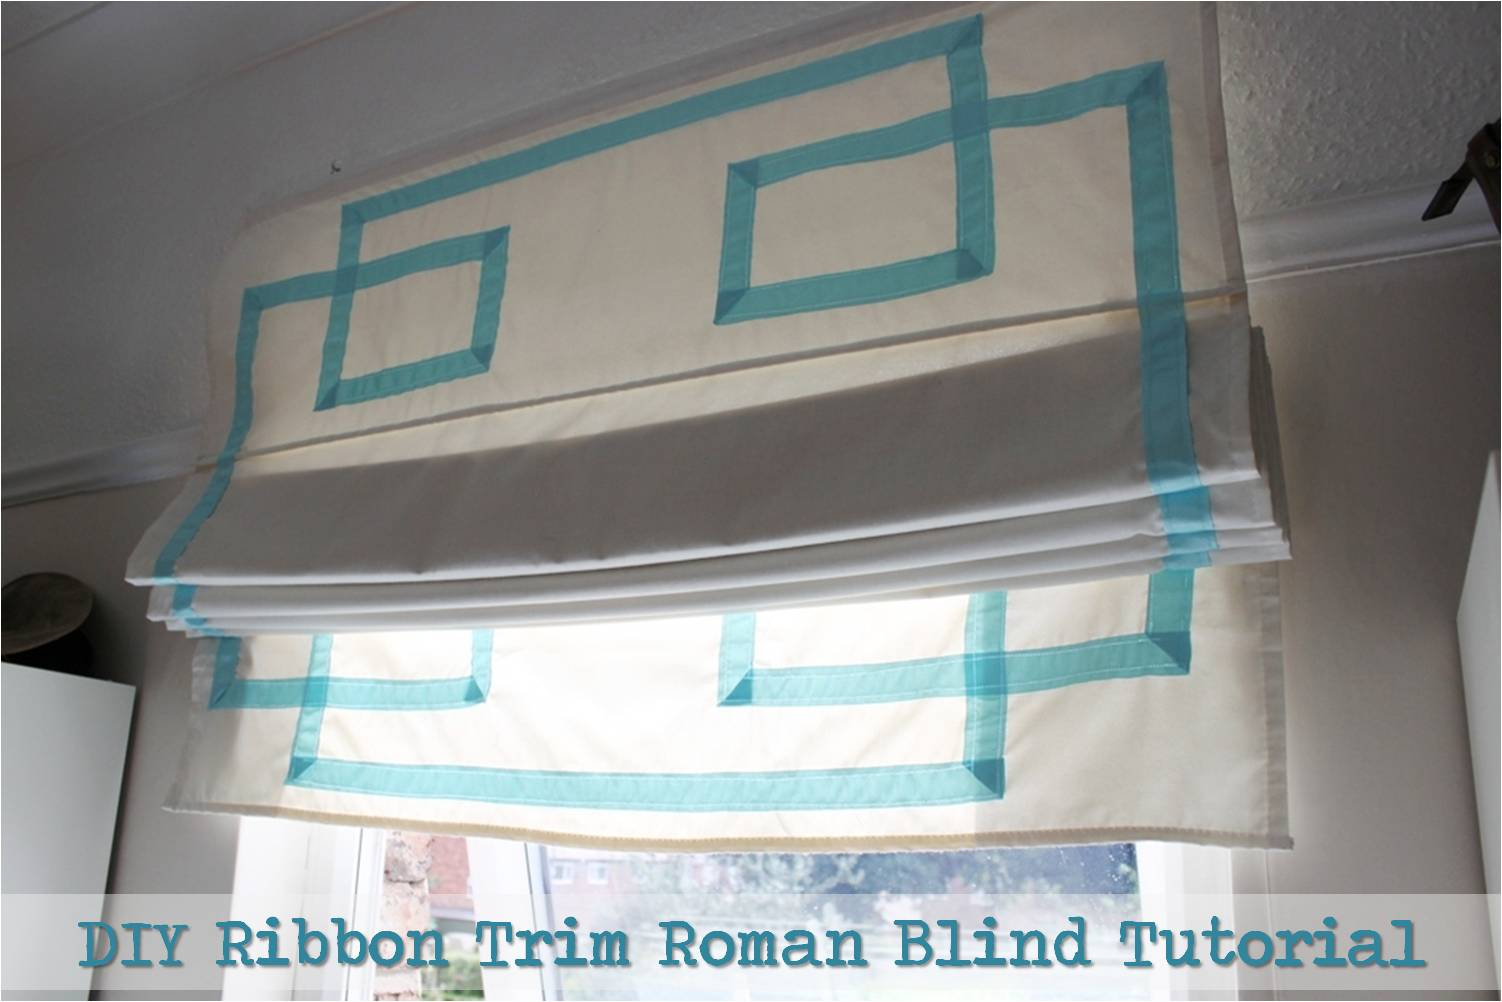 Cheap easy before after diy ribbon trim roman blind tutorial cheap easy before after diy ribbon trim roman blind tutorial solutioingenieria Choice Image